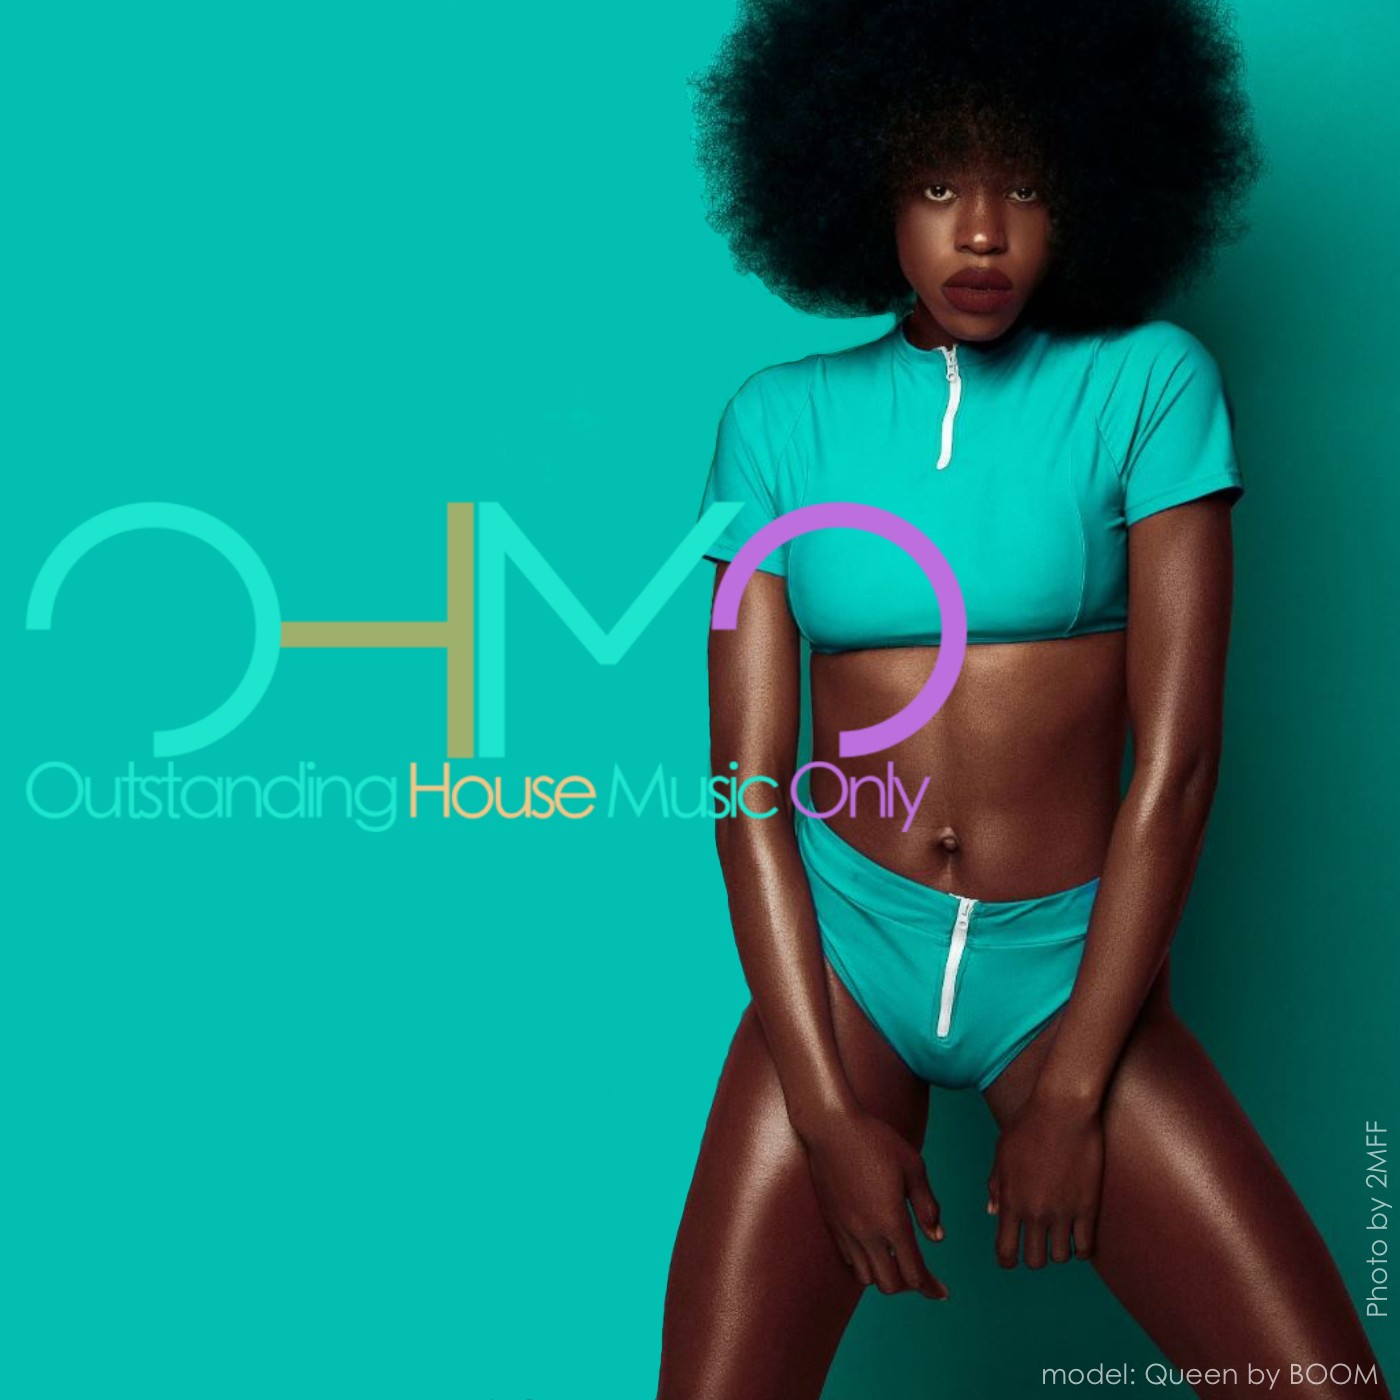 OHMO - Outstanding House Music Only [MAY 2021]